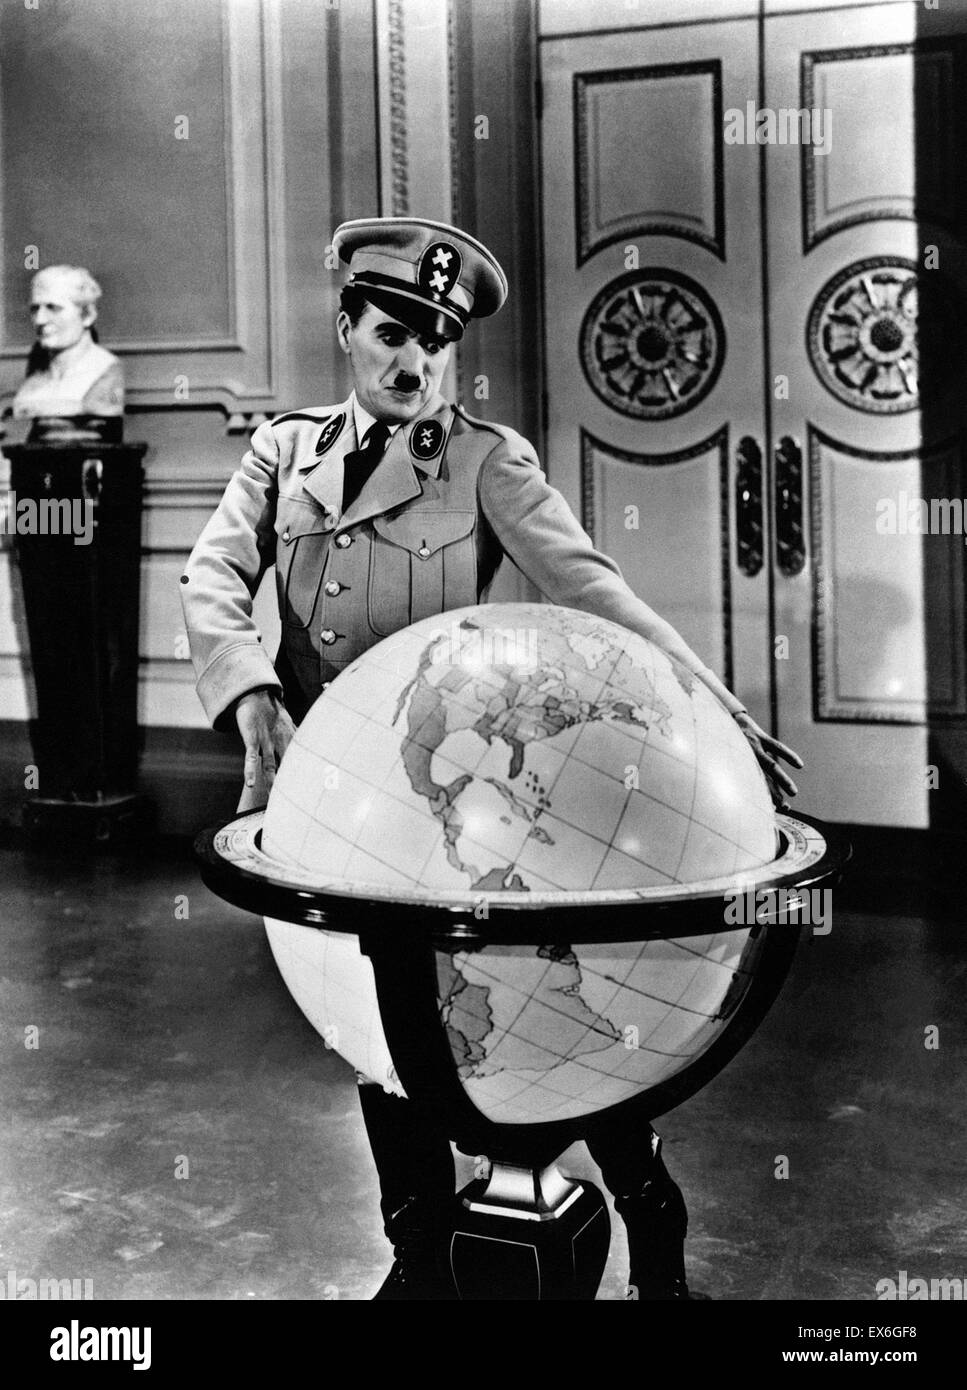 Film still from 'The Great Dictator' starring Charlie Chaplin (1889-1977) Chaplin also wrote, produced, - Stock Image